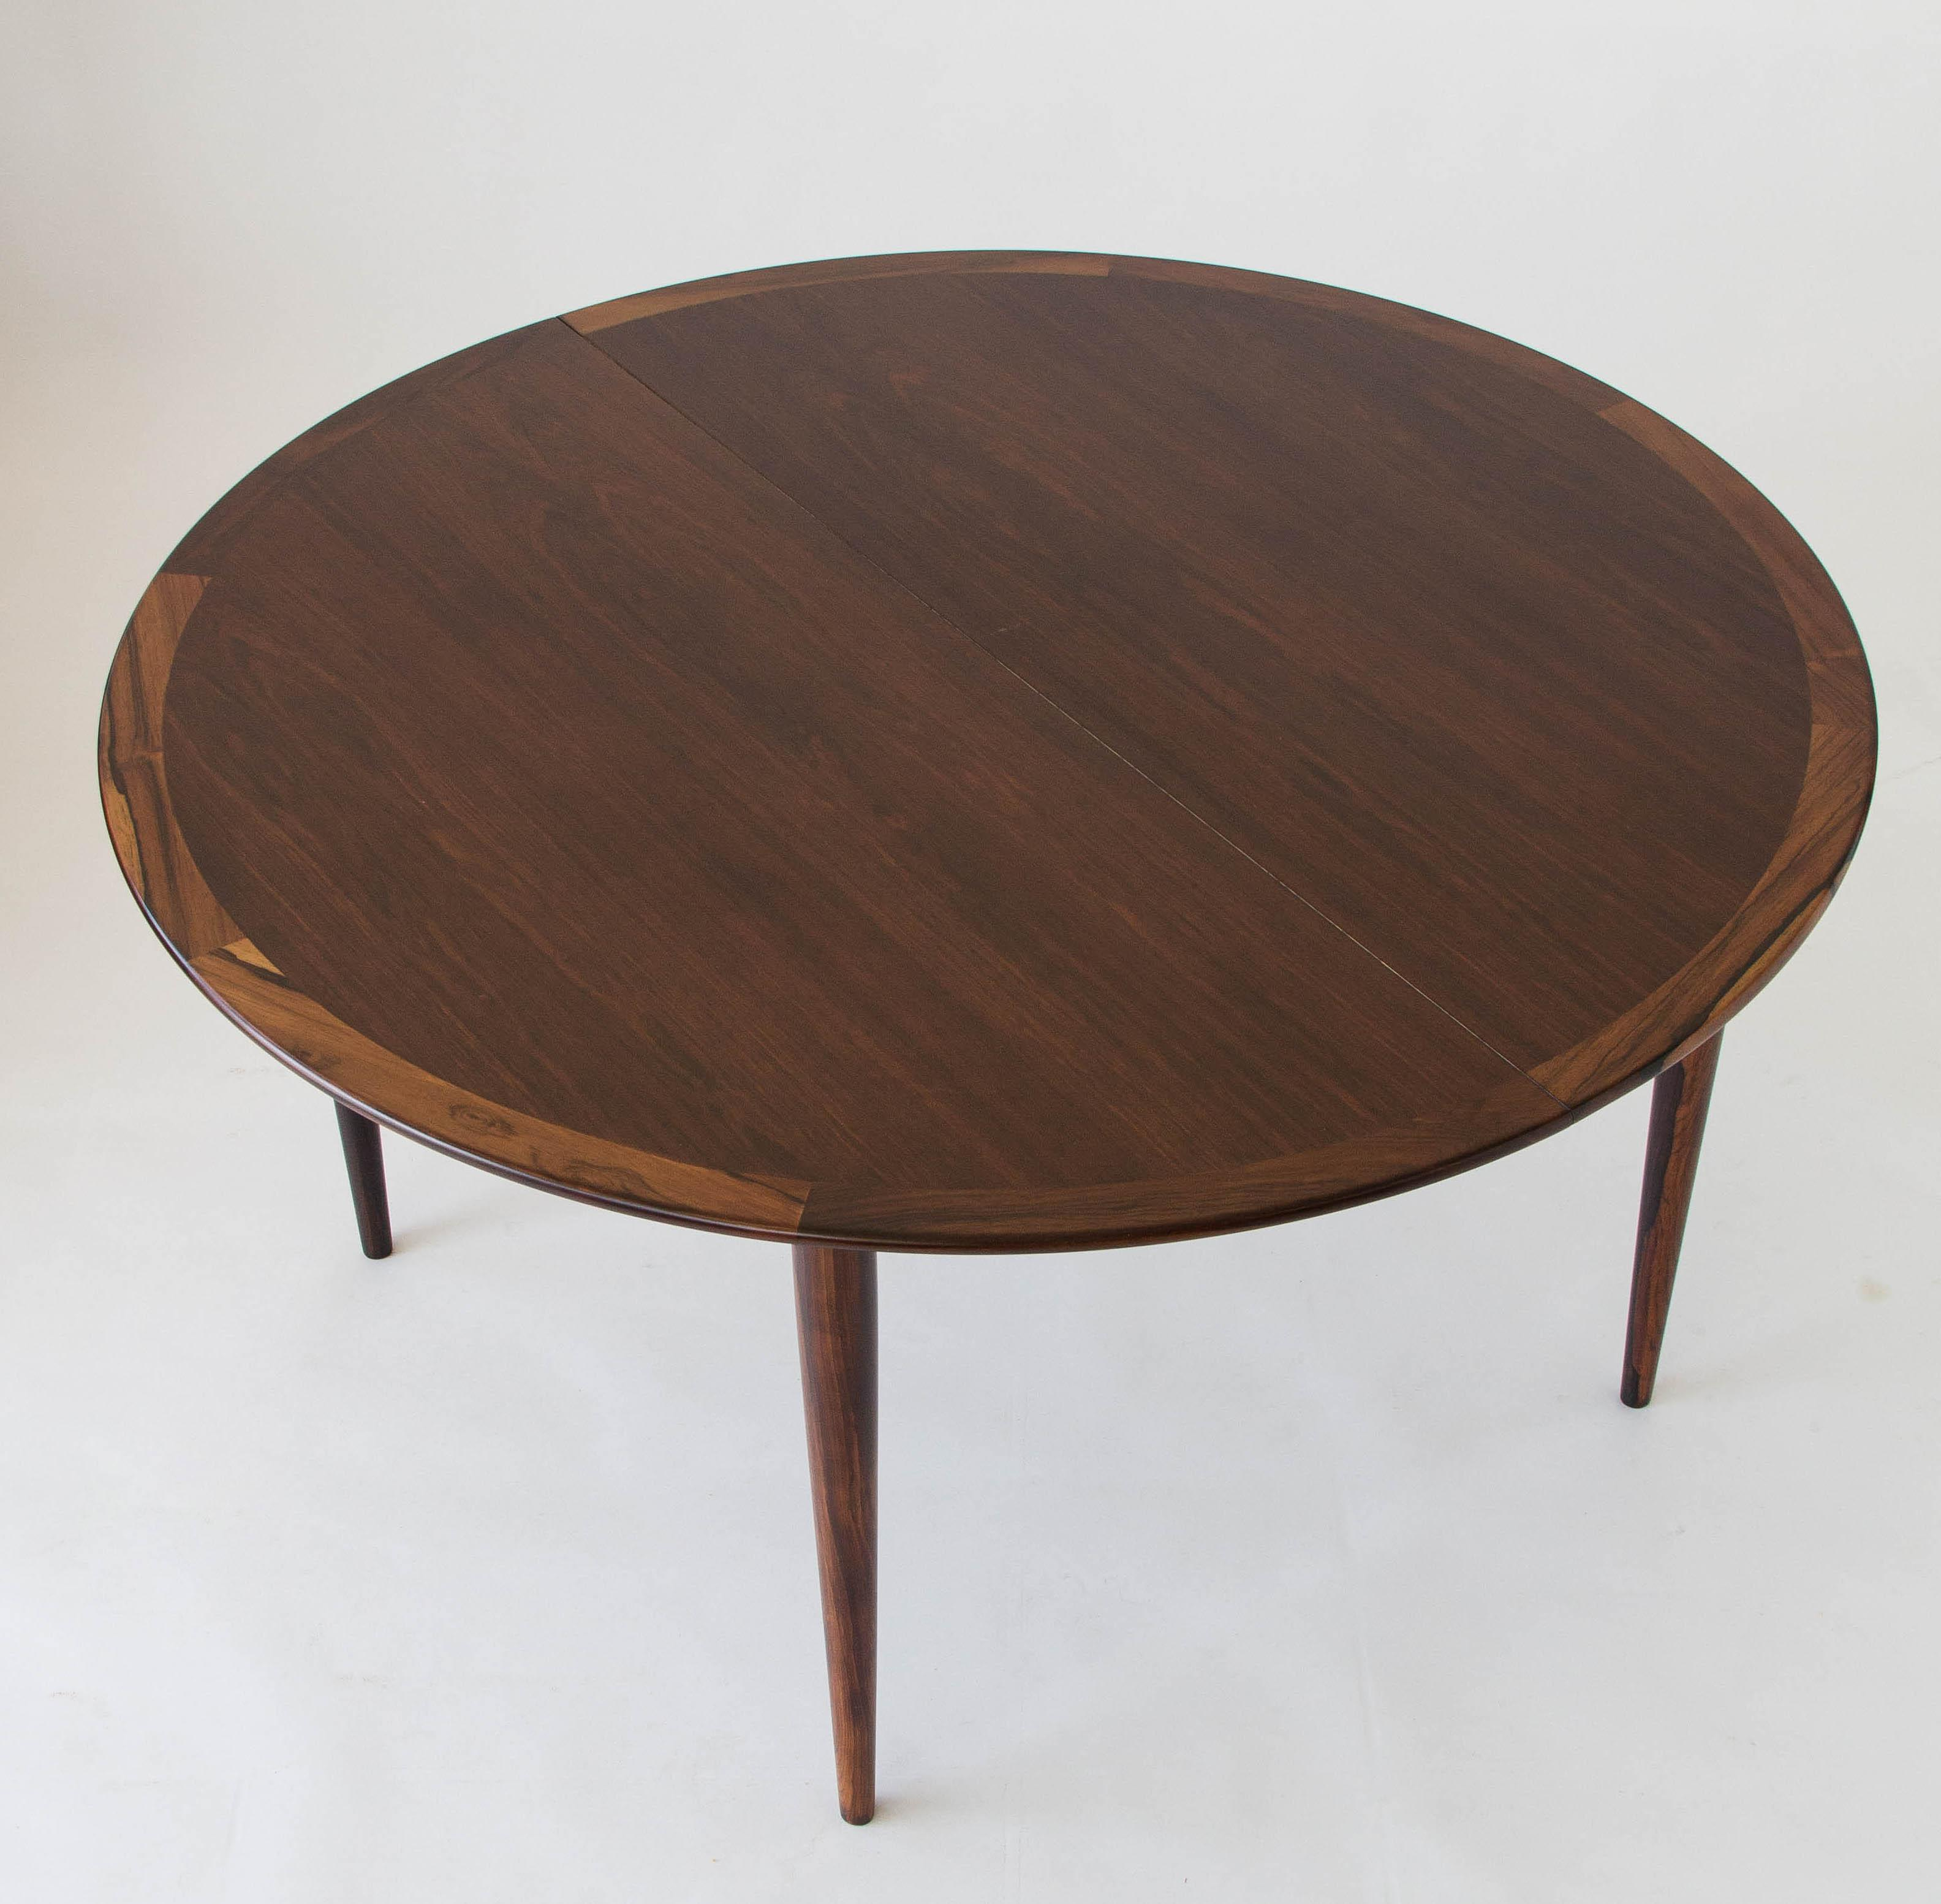 Rosewood Round Dining Table By Grete Jalk For P. Jeppesen   Image 3 Of 7